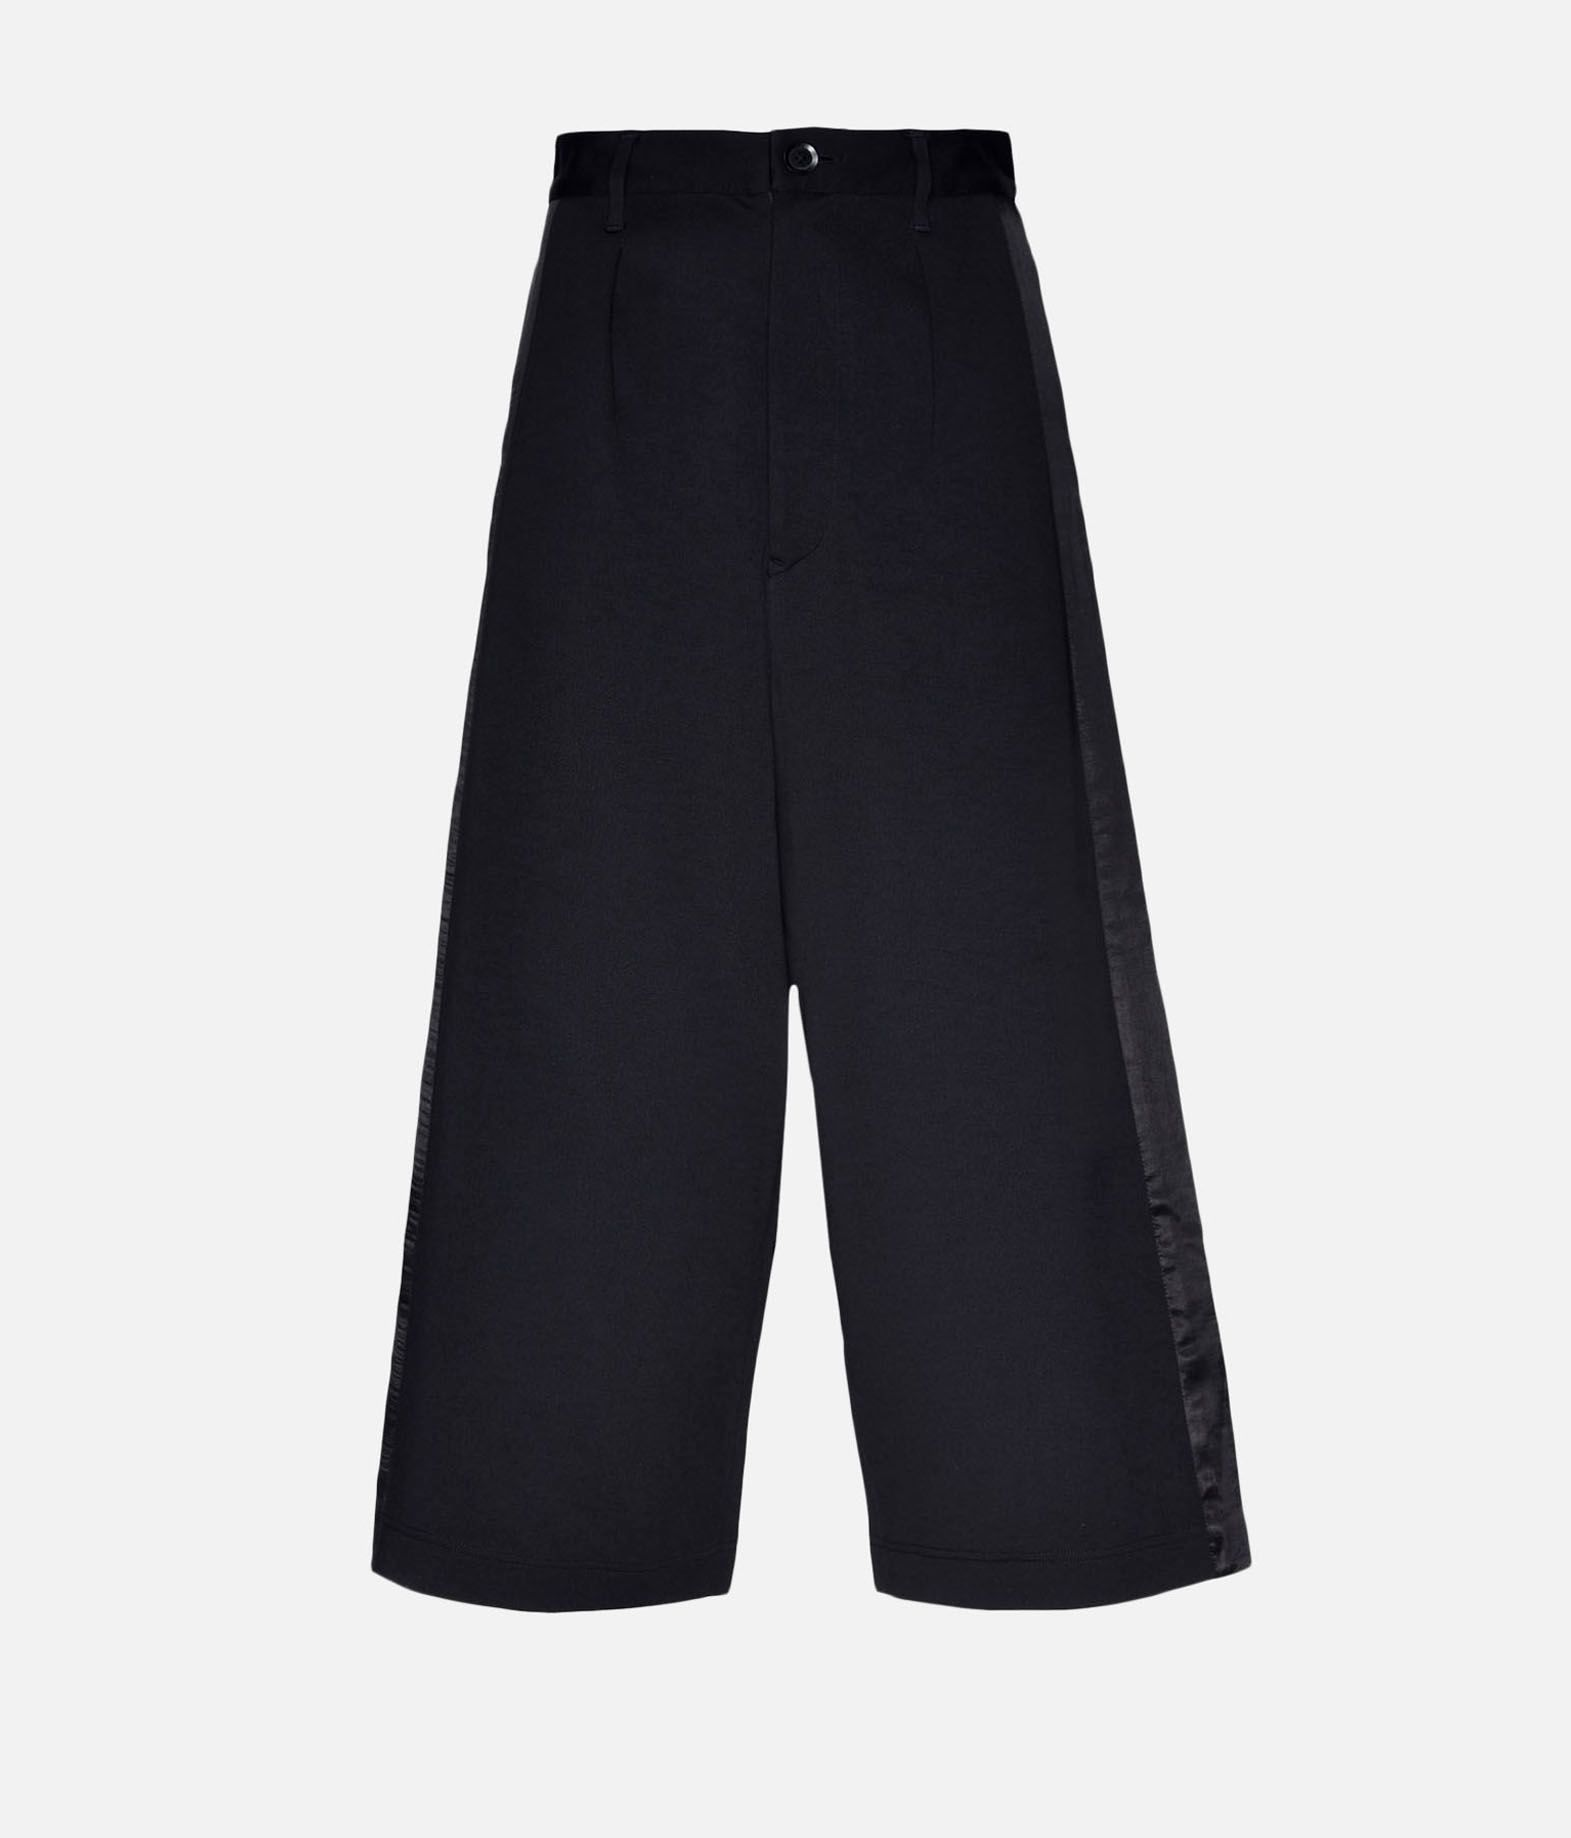 Y-3 Y-3 Matte Track Pants Track pant Woman f